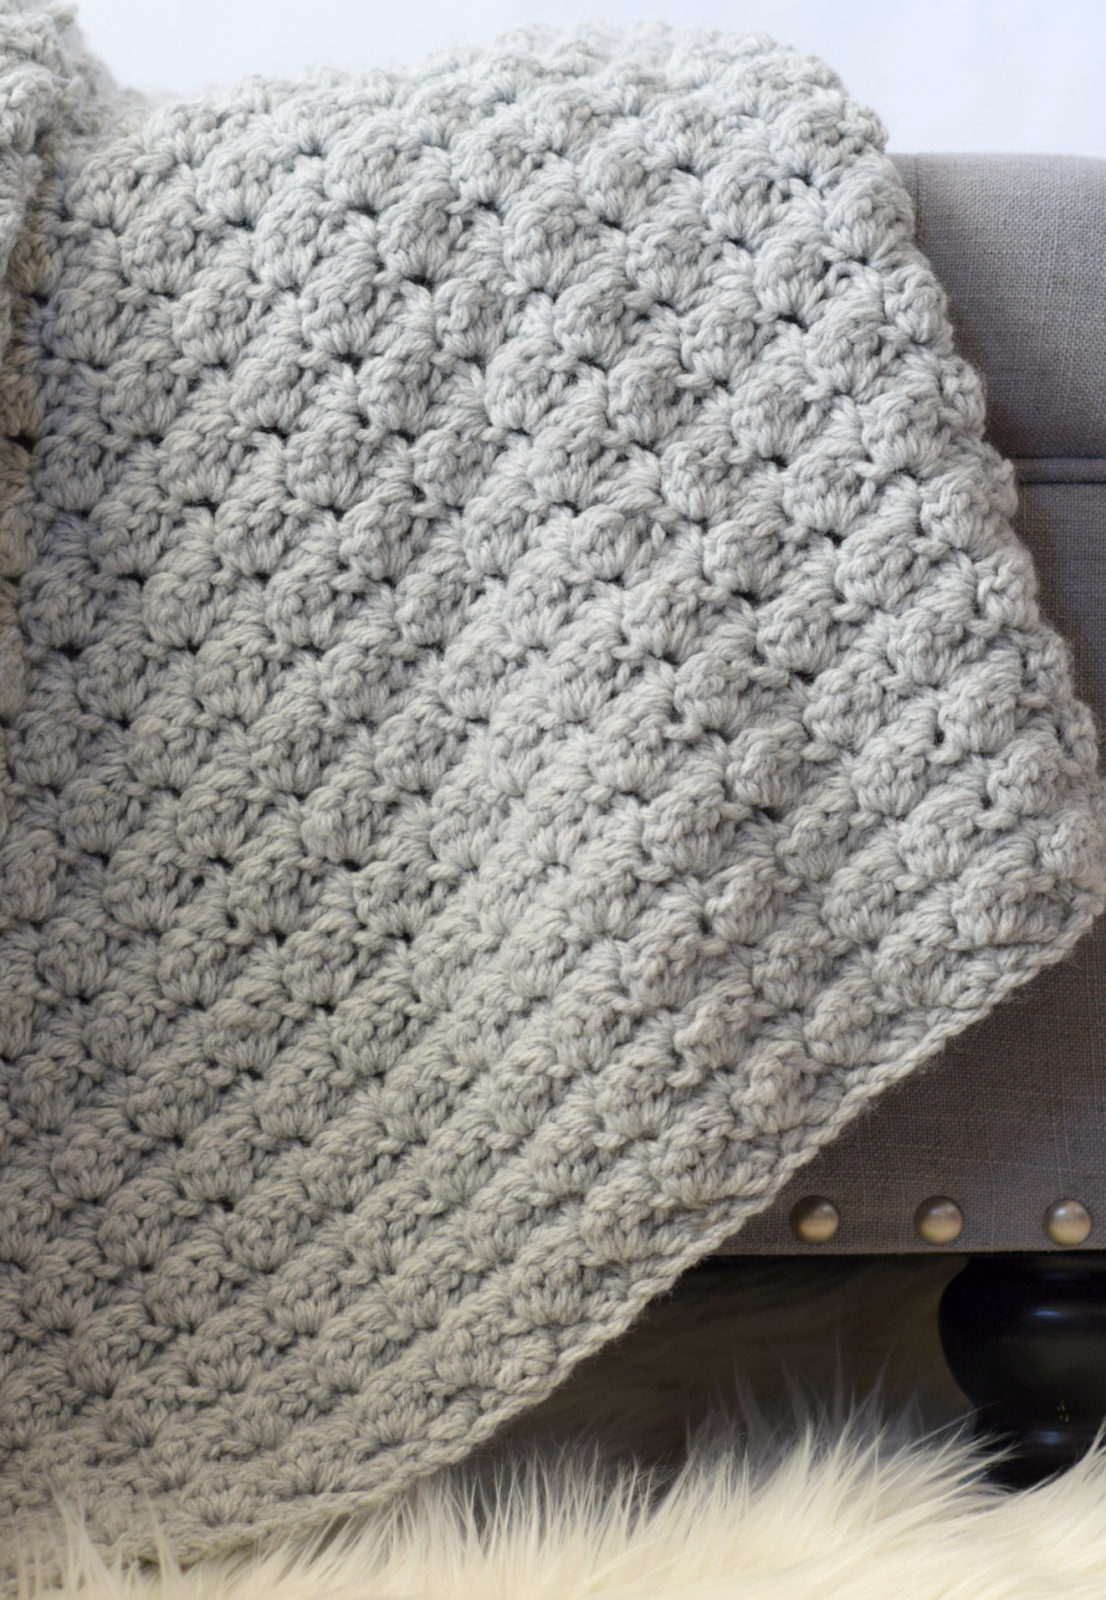 Begginer Crochet Projects Baby Blankets Simple Crocheted Blanket Go To Pattern Mama In A Stitch